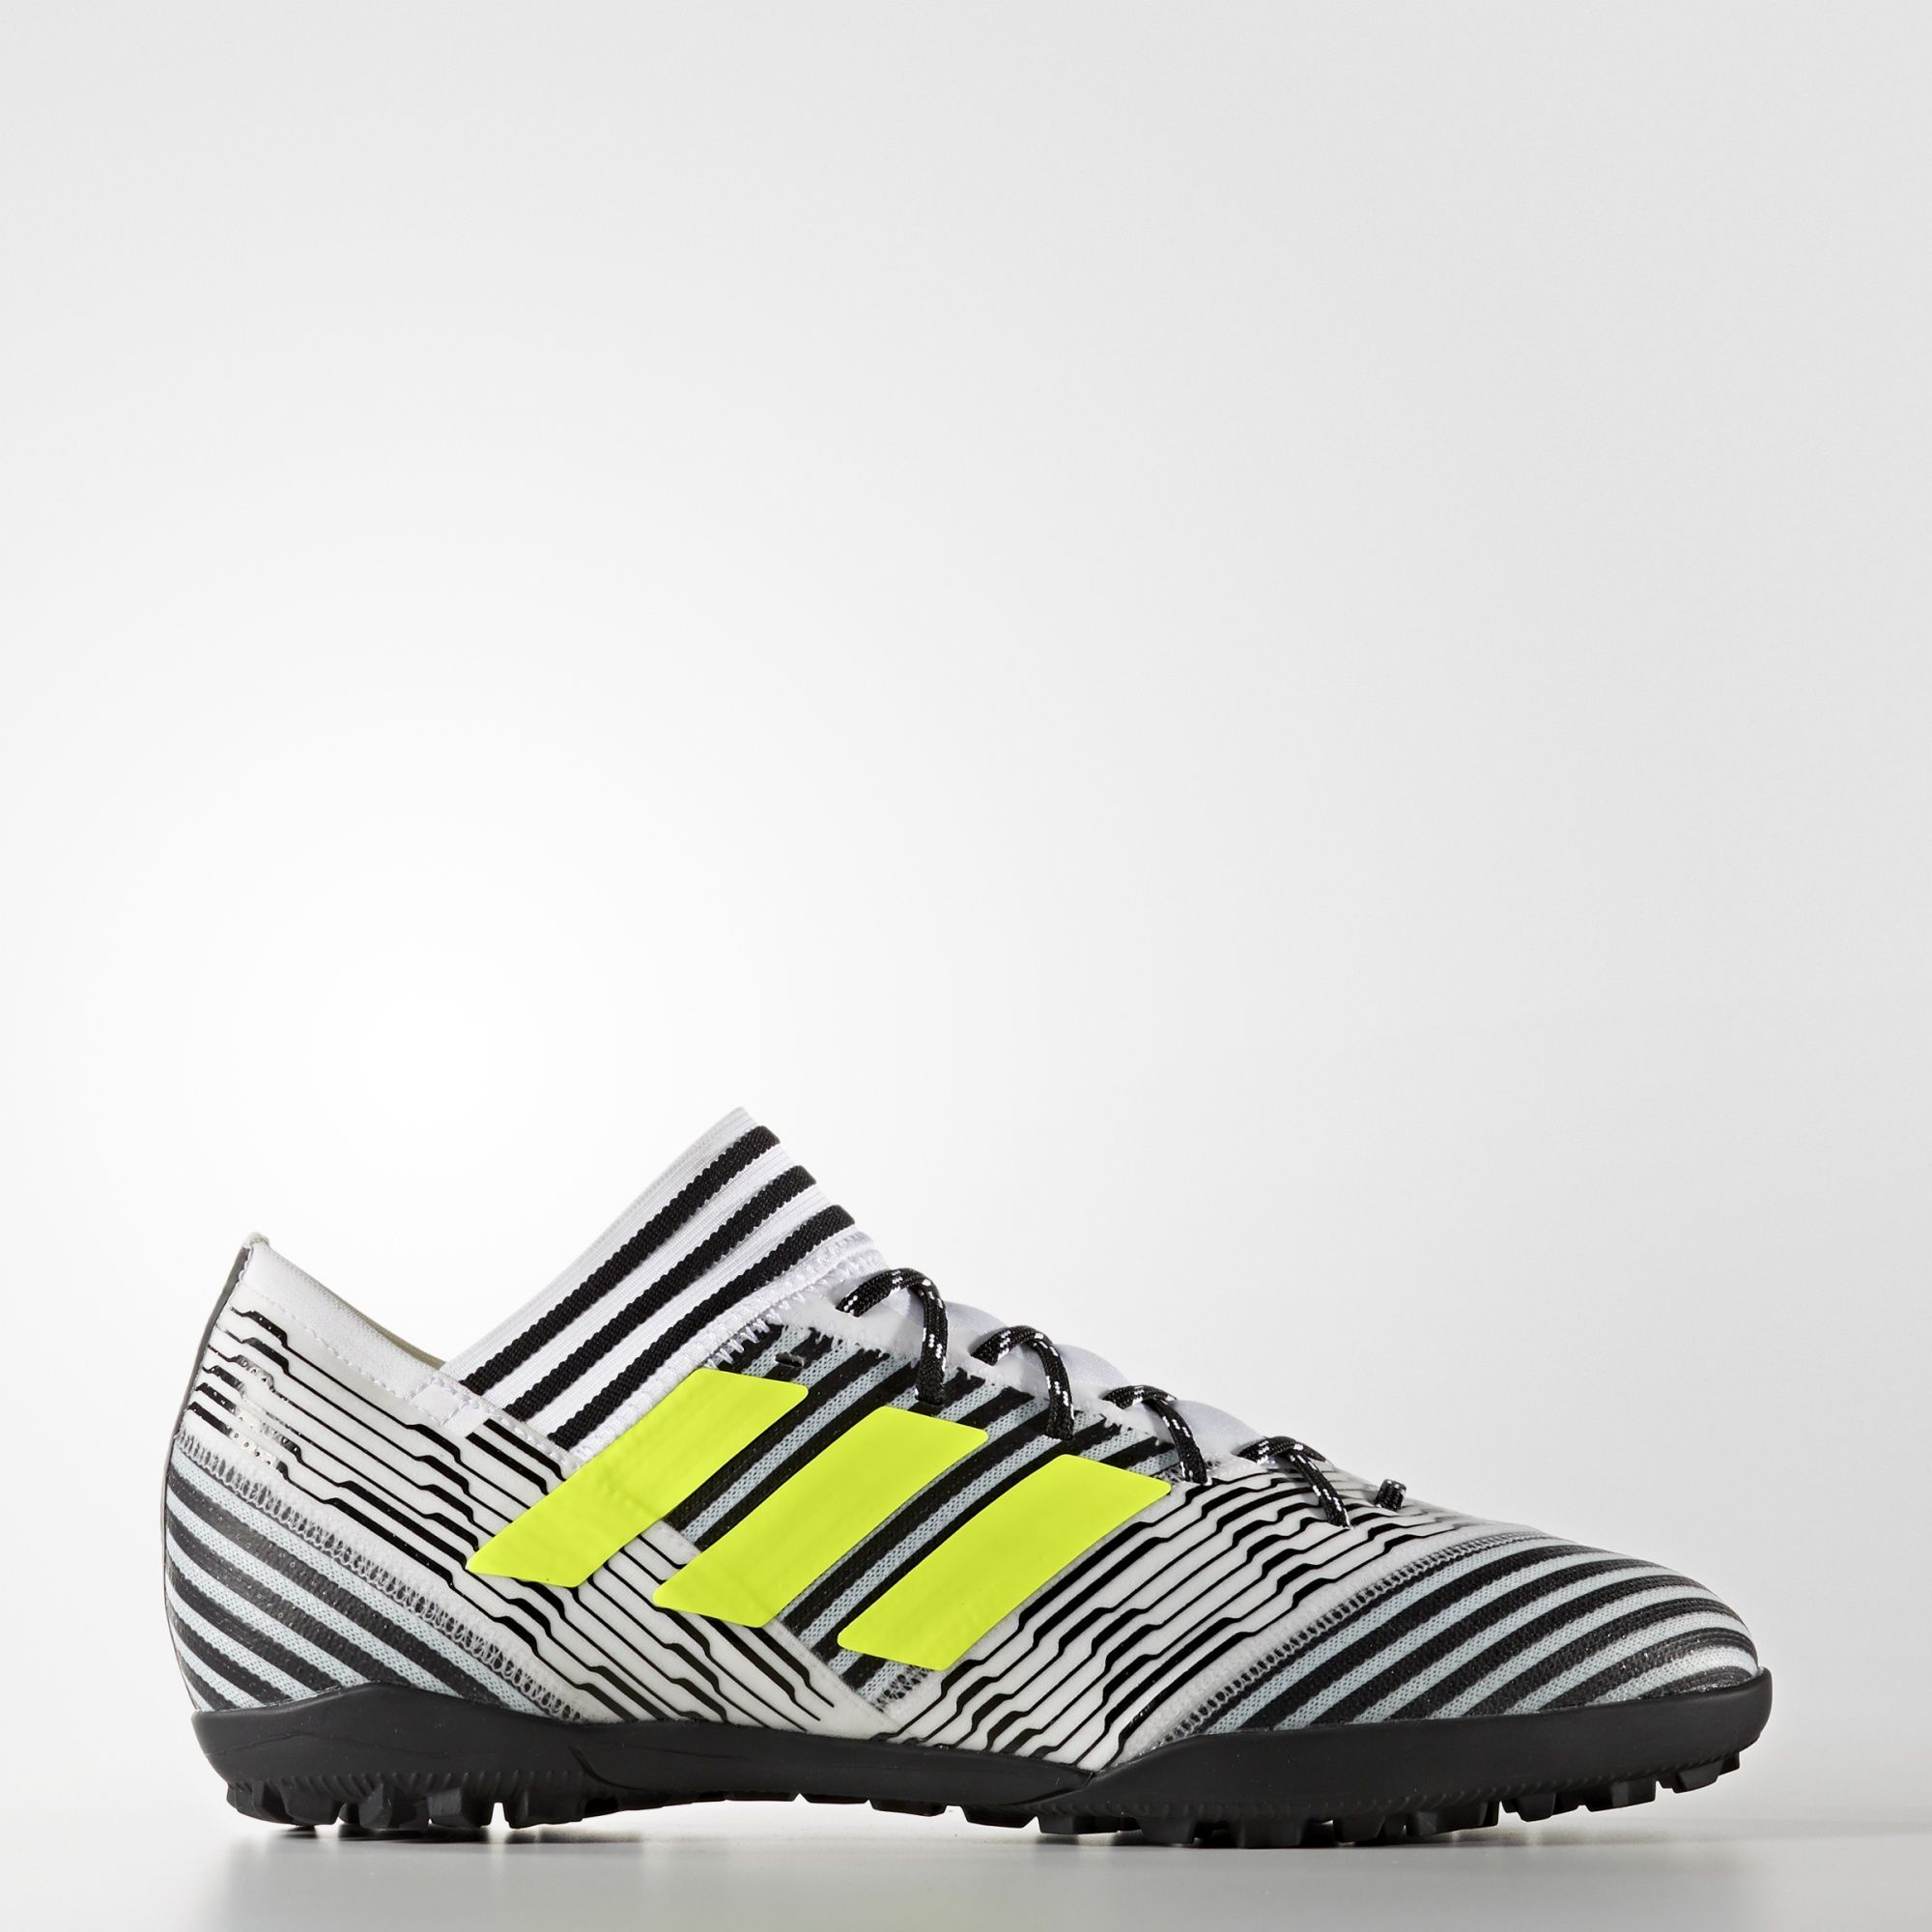 buy popular dfe7d 8032d adidas - Zapatillas de fútbol NEMEZIZ TANGO 17.3 Pasto Artificial